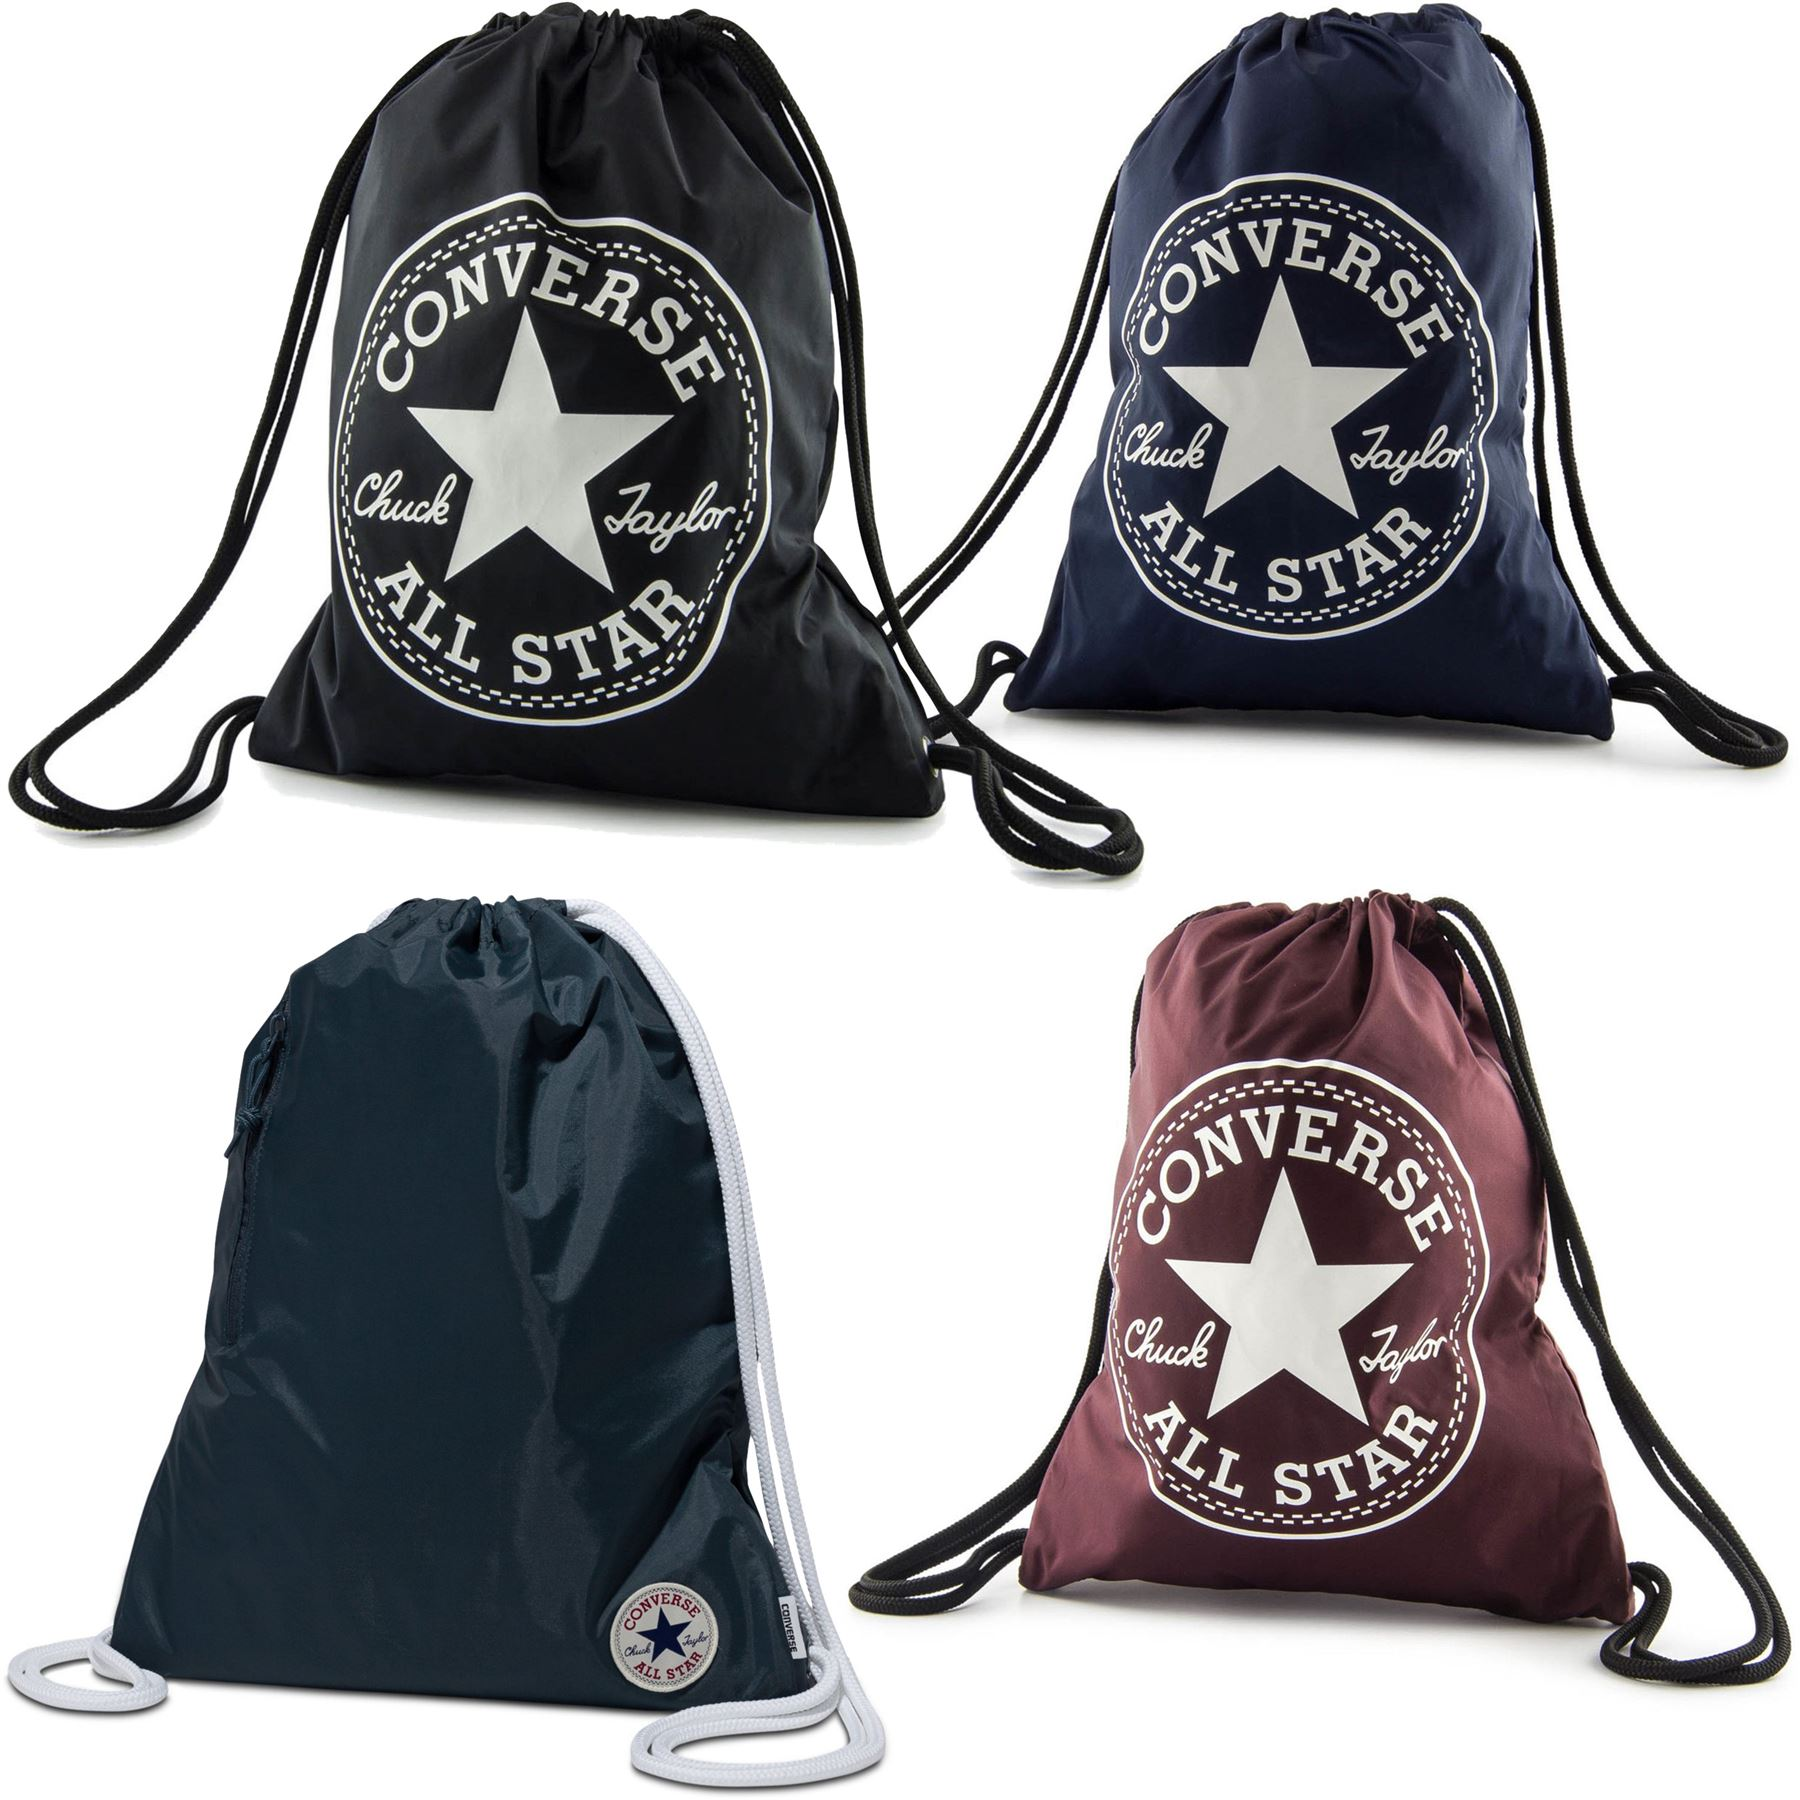 0bc237c60a2 Details about Converse Gym Bag Drawstring Bag - Black, Grey, Navy, Pink,  Blue